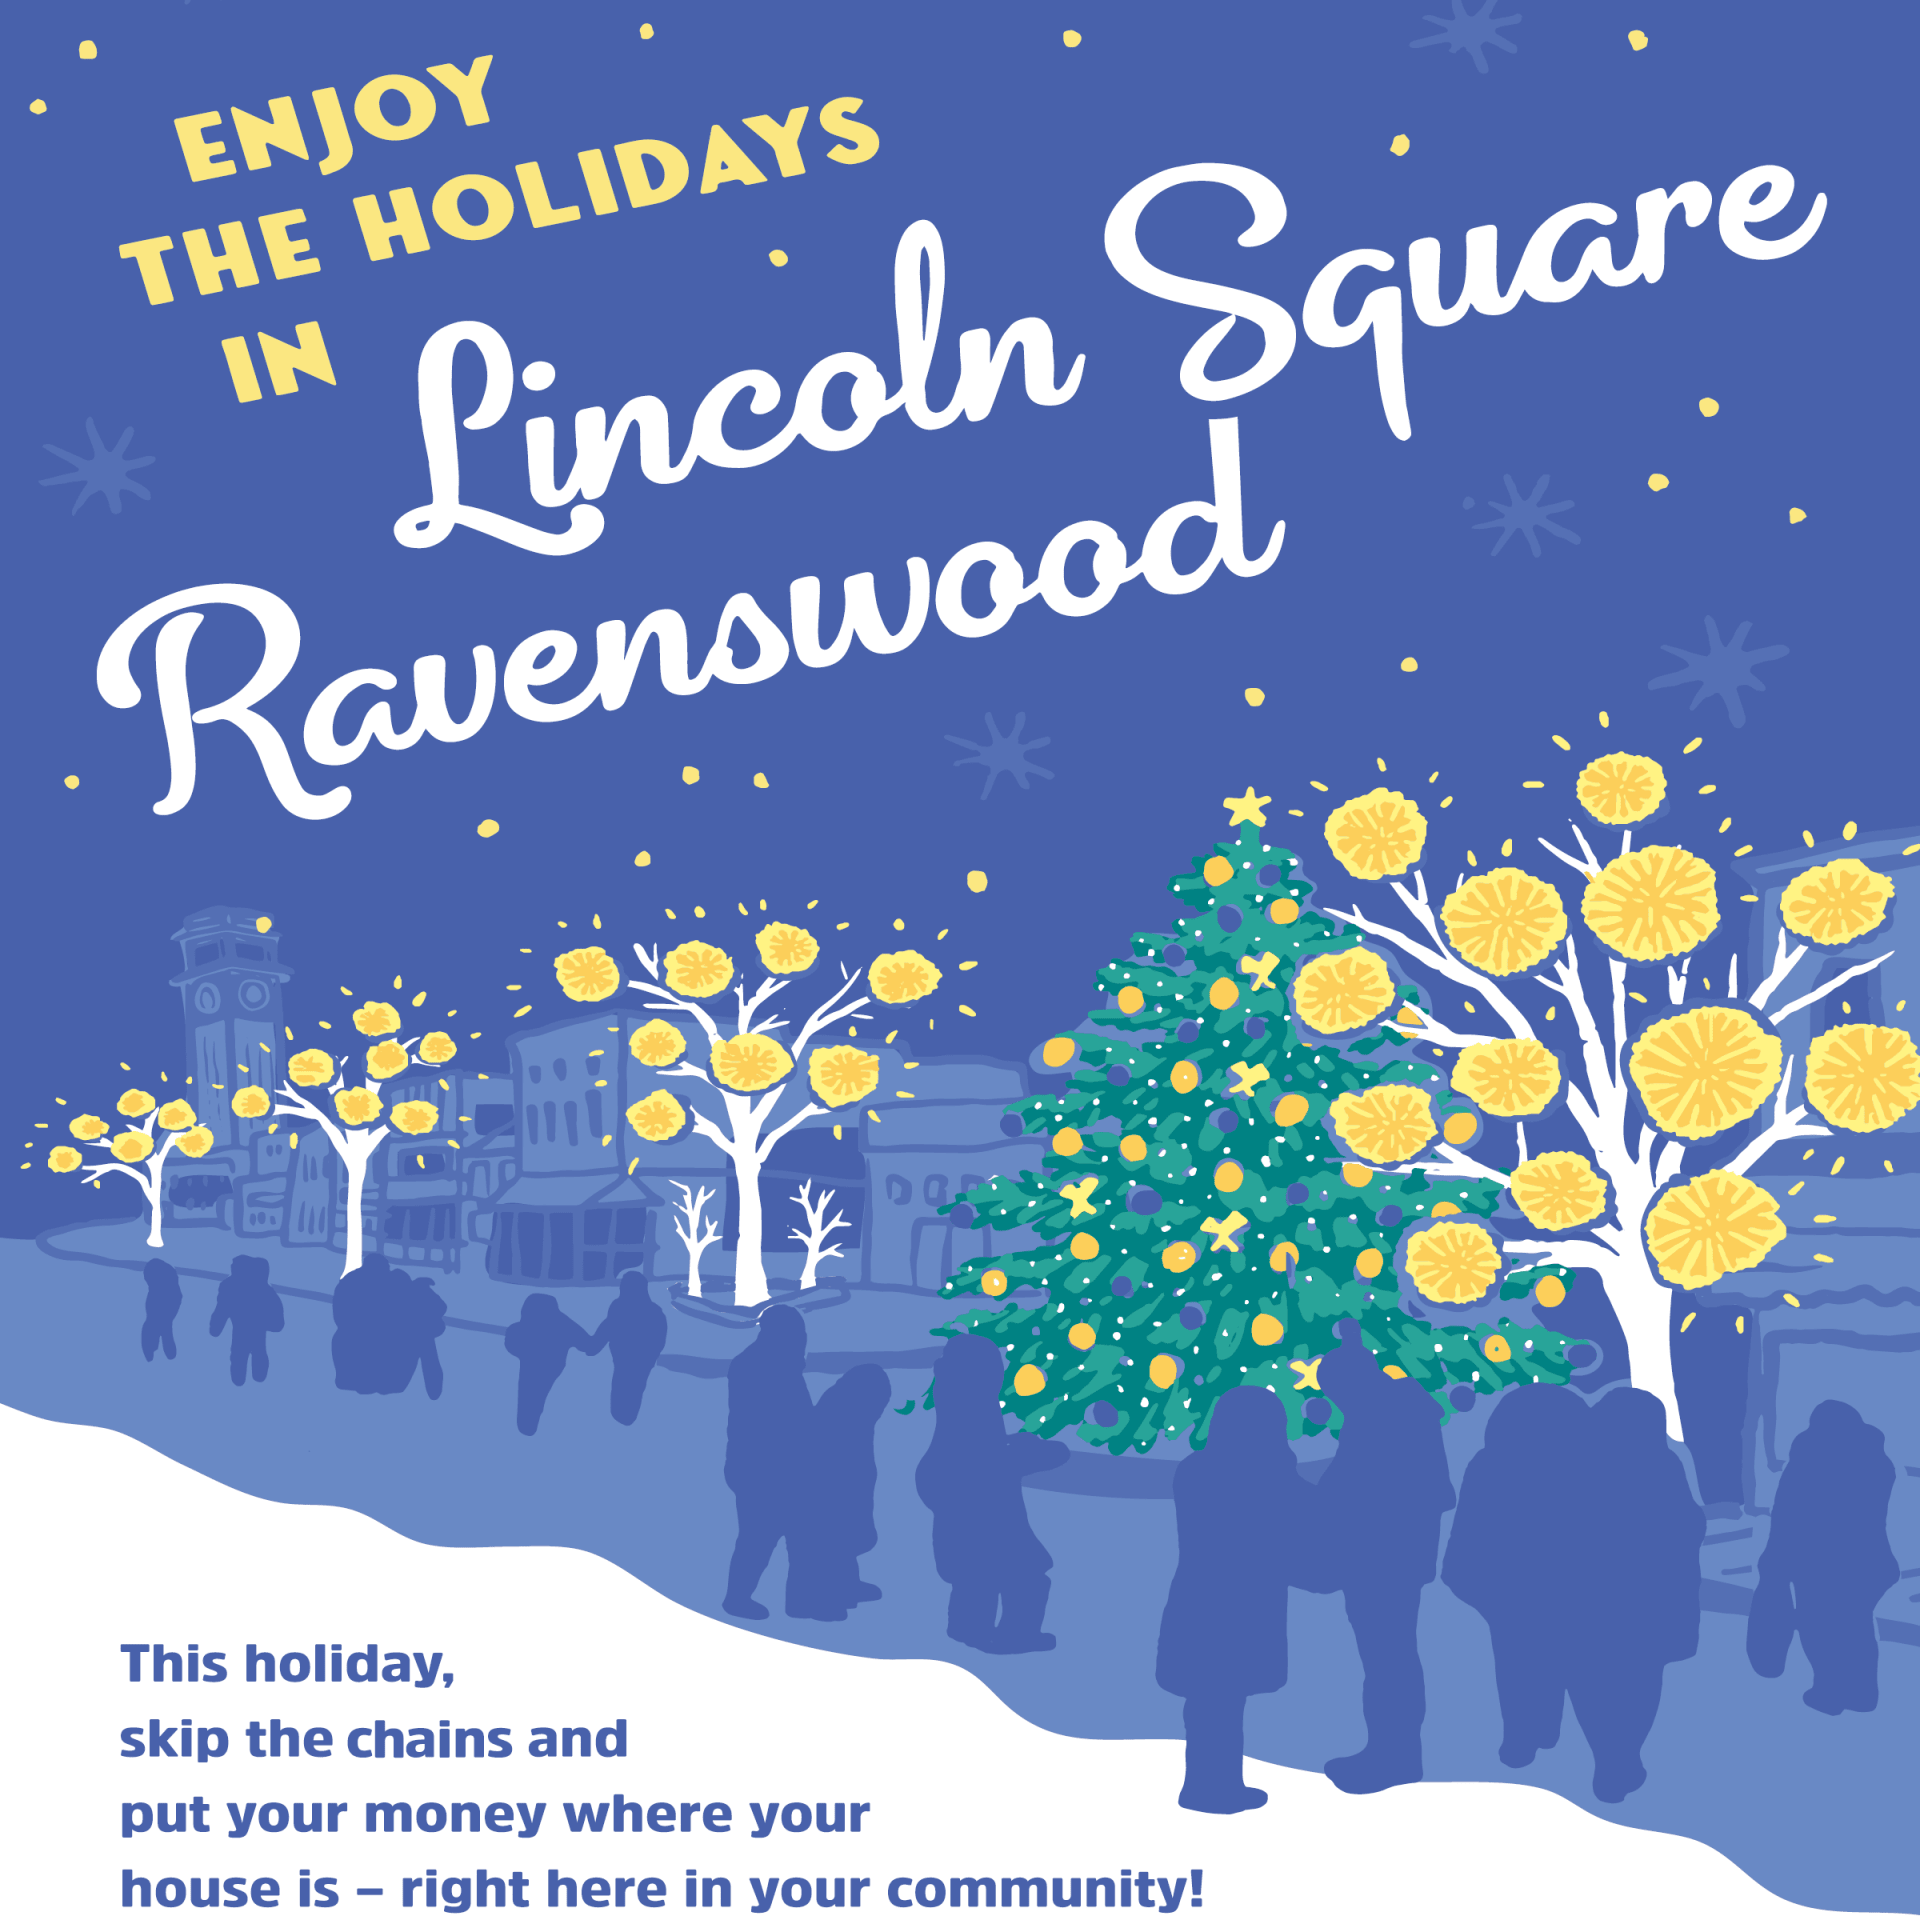 Holidays in Lincoln Square Ravenswoos